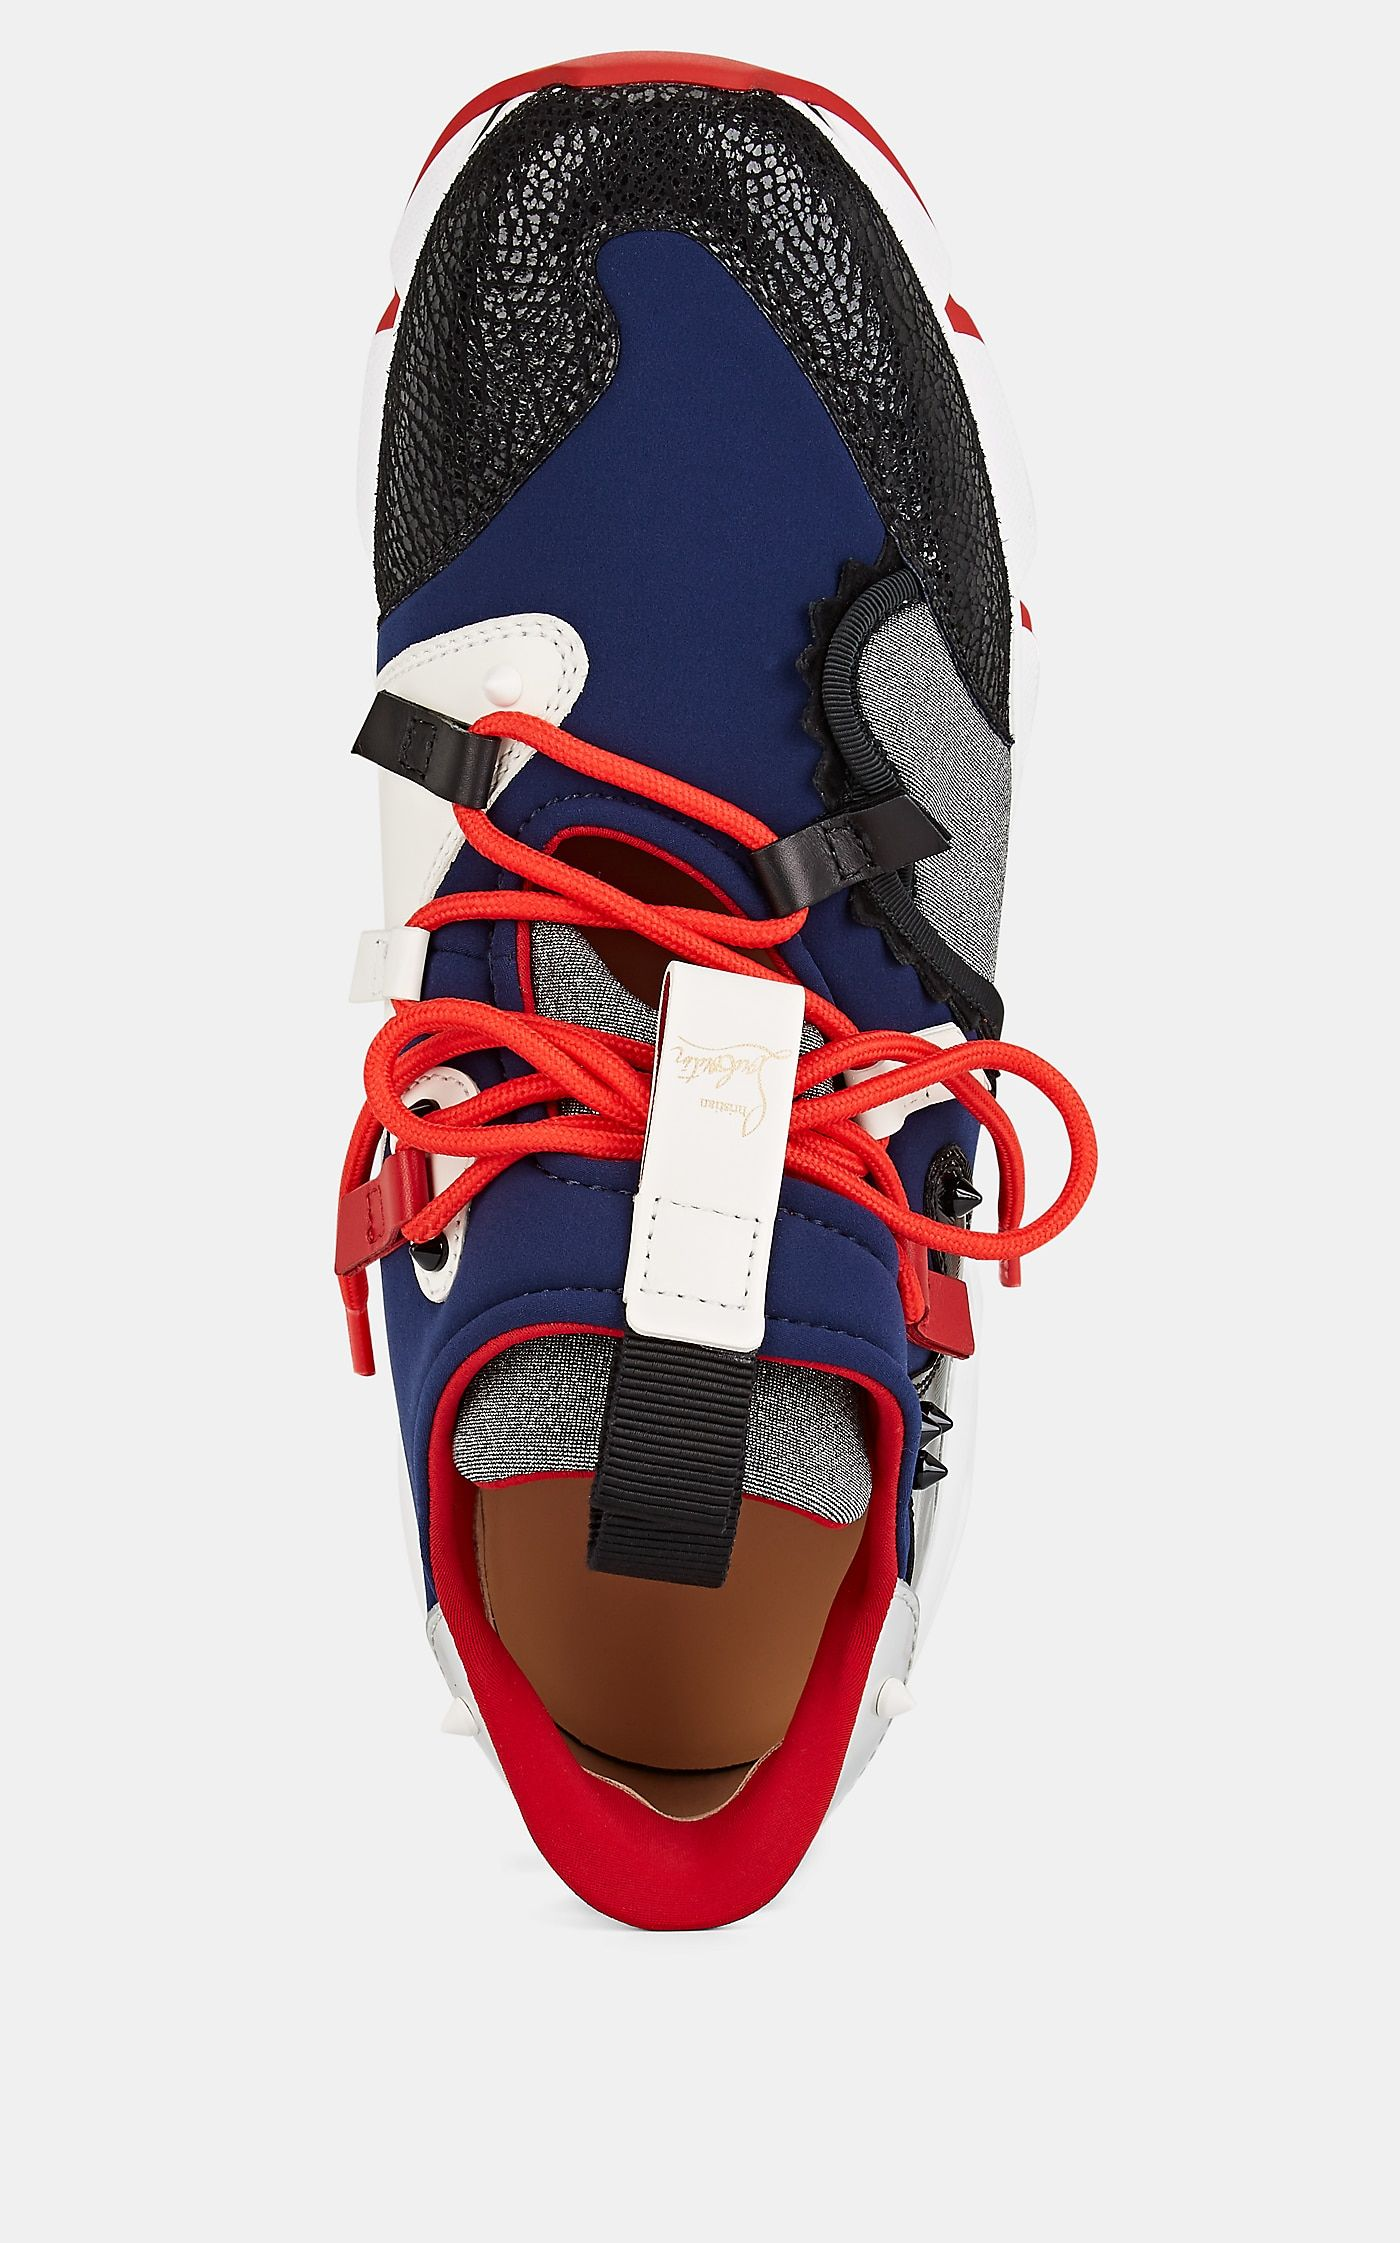 Christian Sneakers Runner Mixed Louboutin Red Navy Men's Material qMGSVUpz